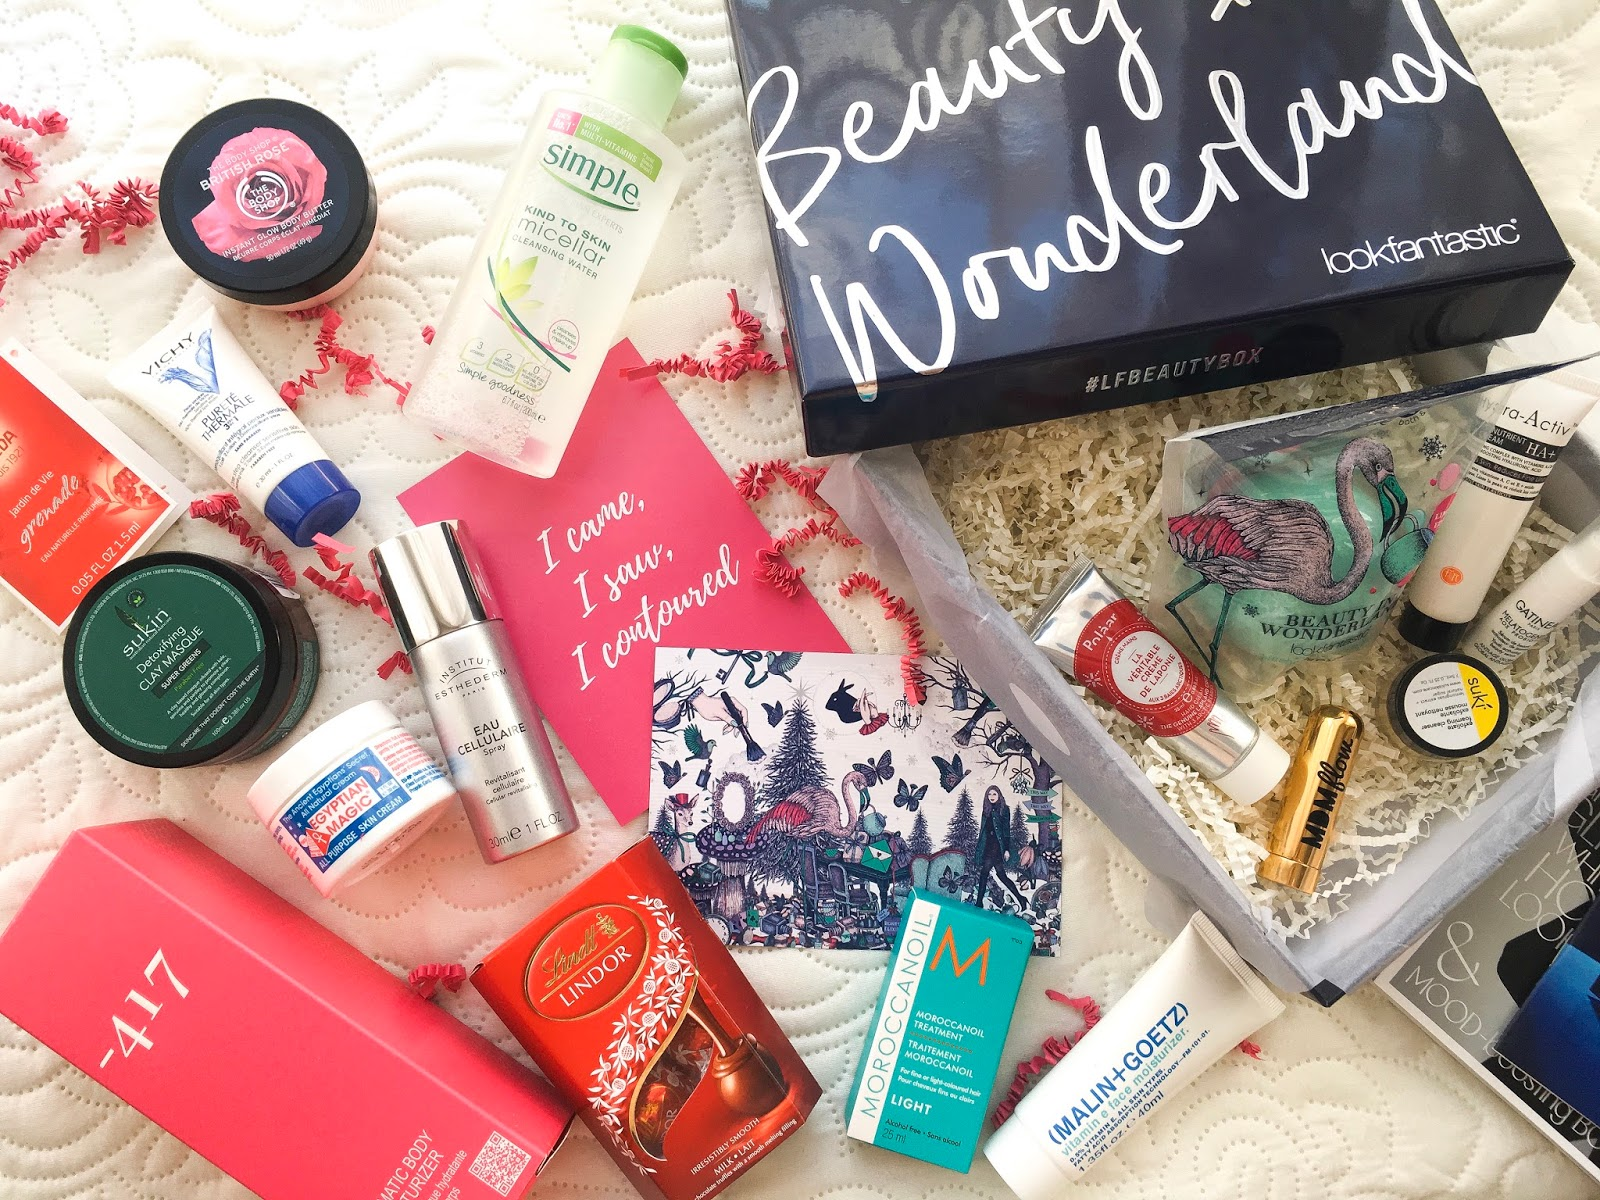 look fantastic beauty box monthly review, latest in beauty build your own box review